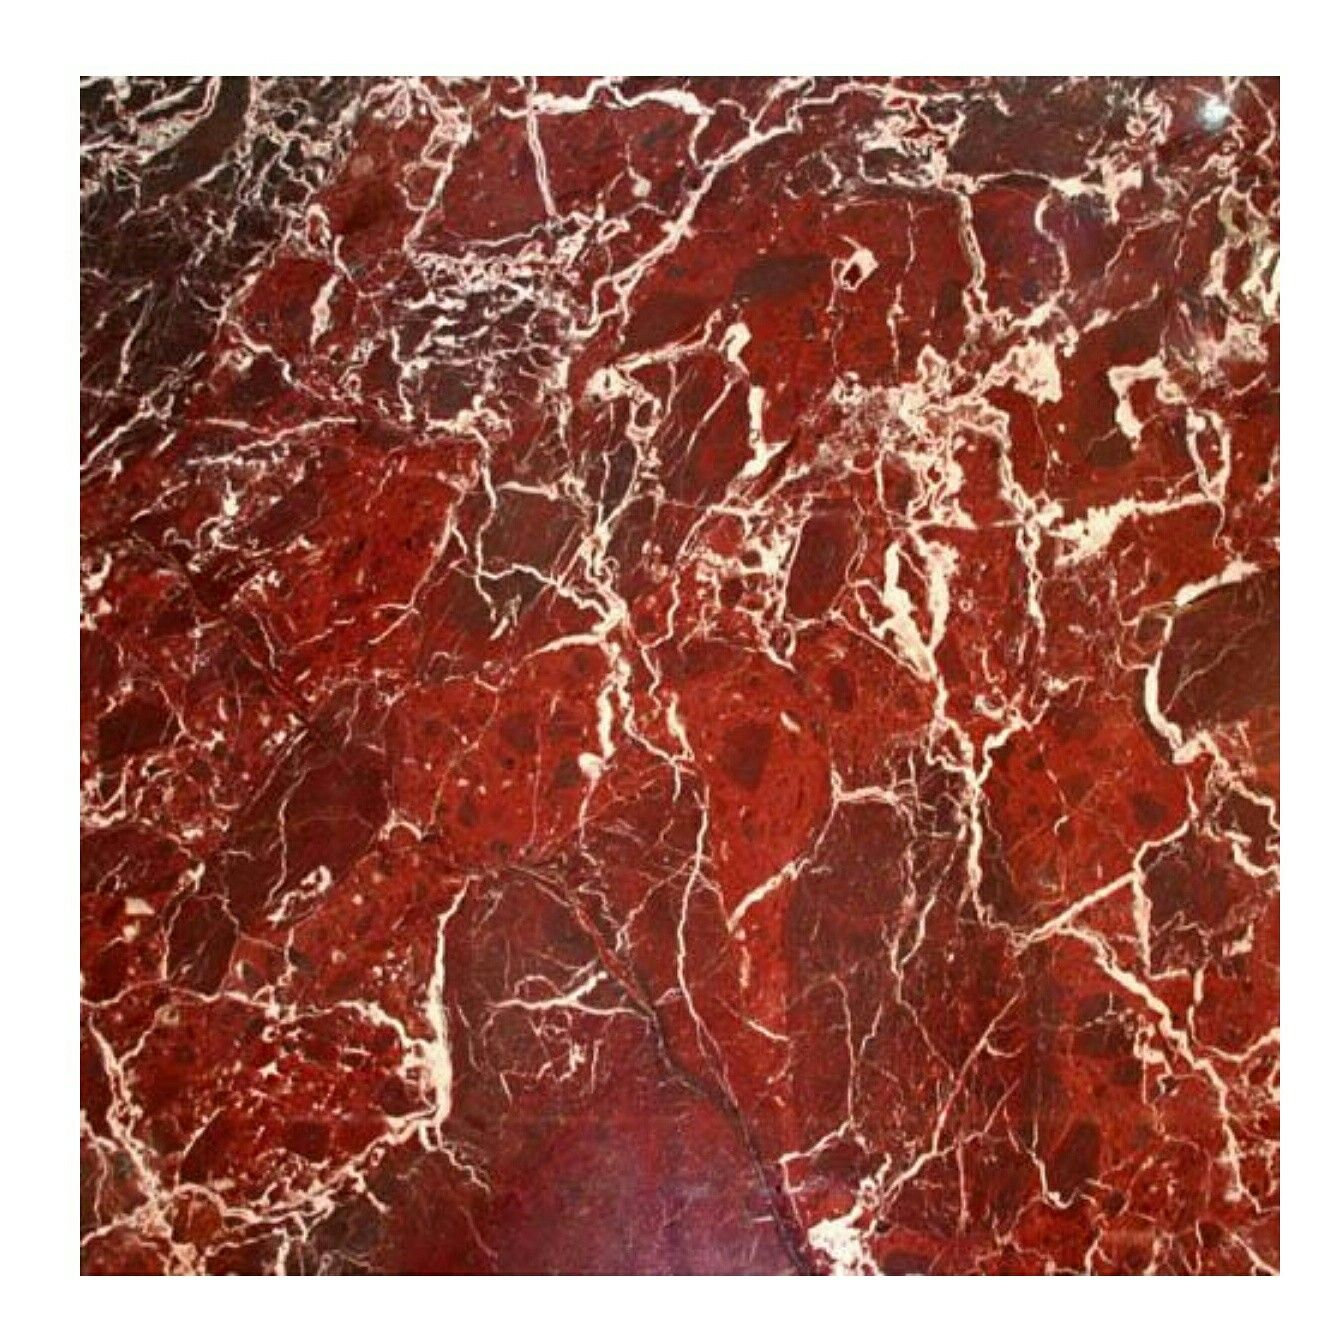 1336x1336 red marble | Marbling in 2019 | Marble wallpaper phone ...